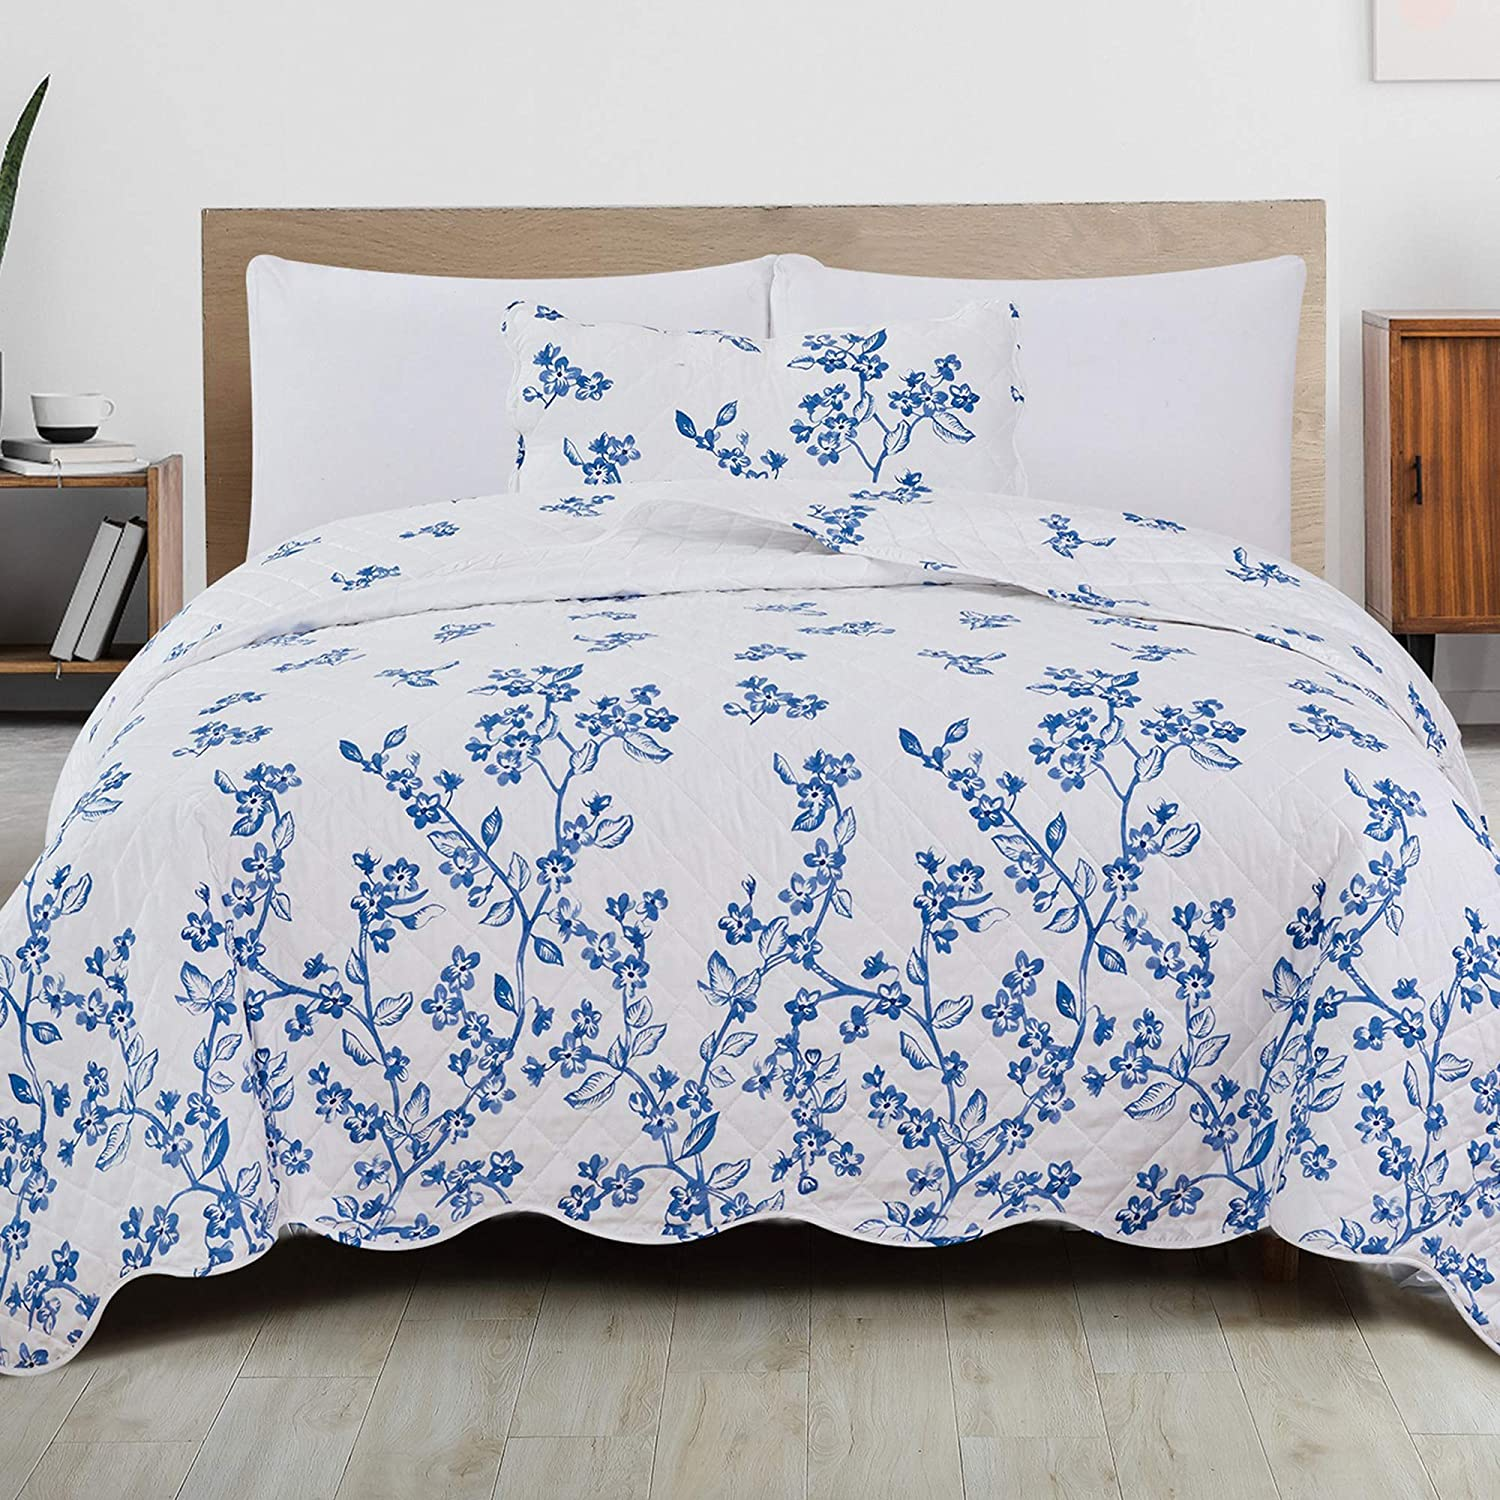 2-Piece Reversible Quilt Set with Shams. All-Season Microfiber Bedspread with Floral Print Pattern. Raelynn Collection